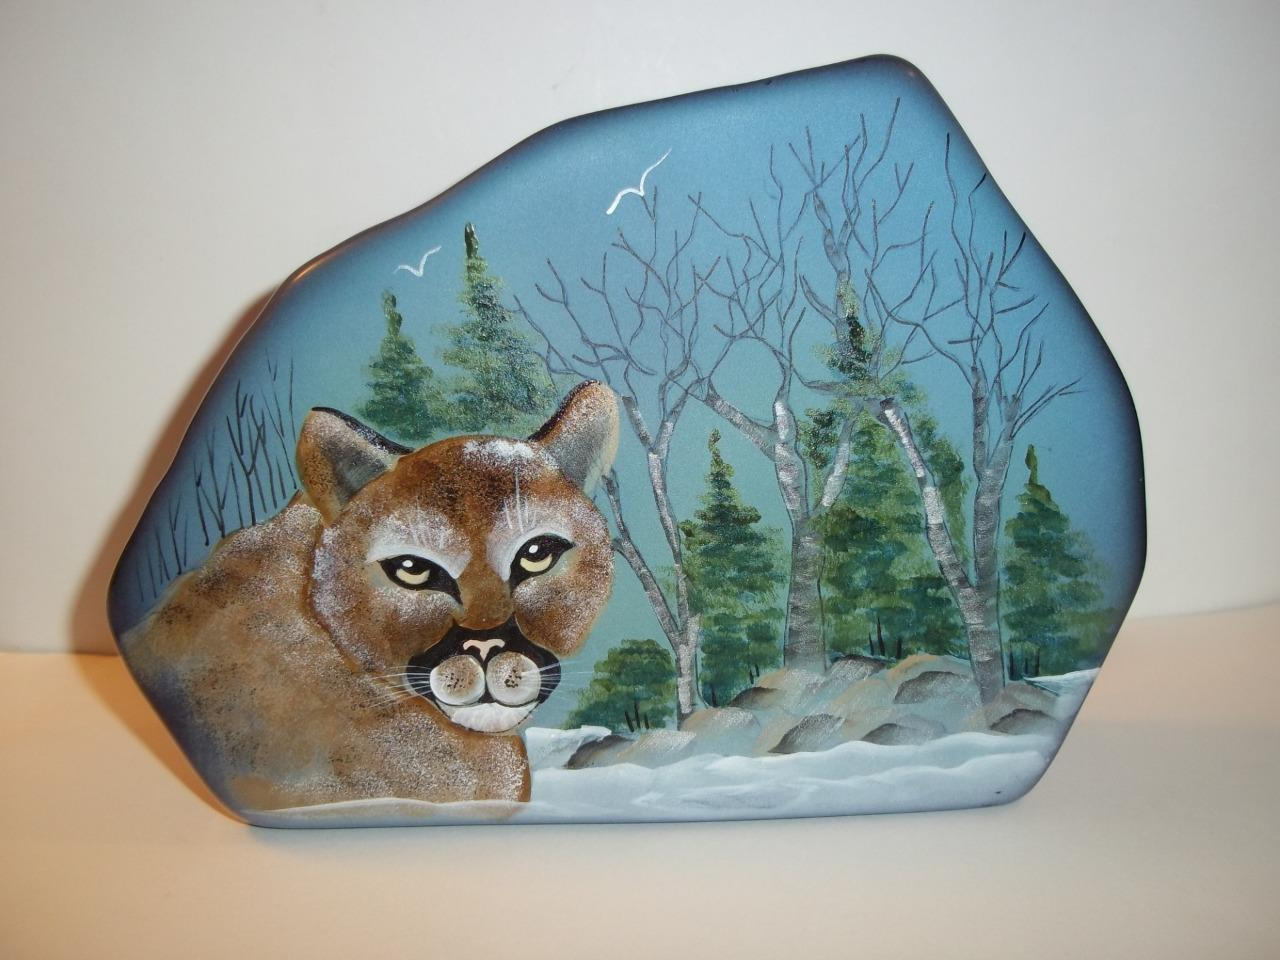 Fenton Glass Mountain Lion Cougar Cat Iceberg Paperweight Lt Ed Kim Barley #5/13